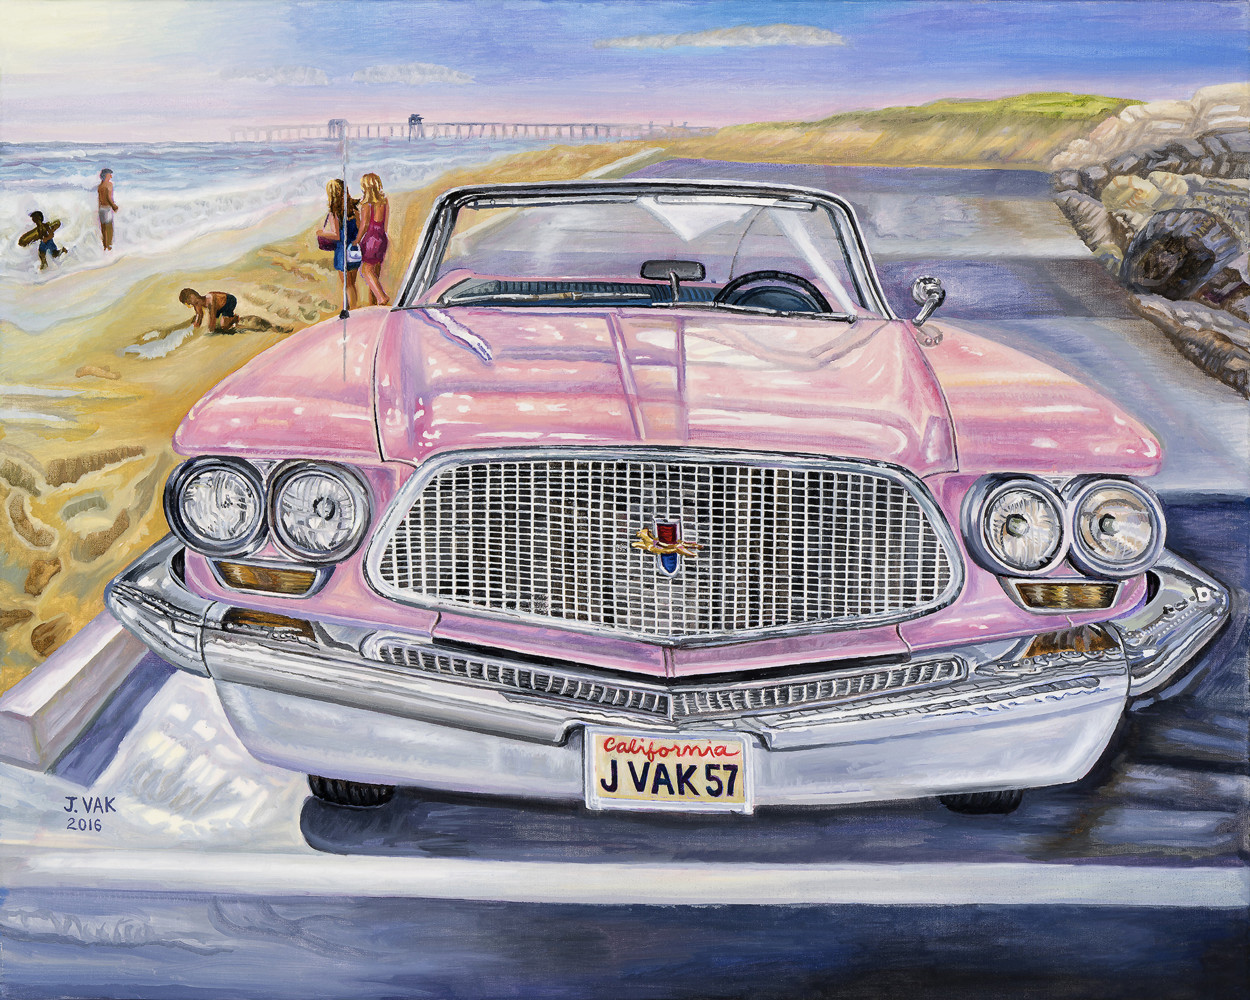 1960 Chrysler Windsor in Pink 24 X 30 Oil on Canvas $2850 2016